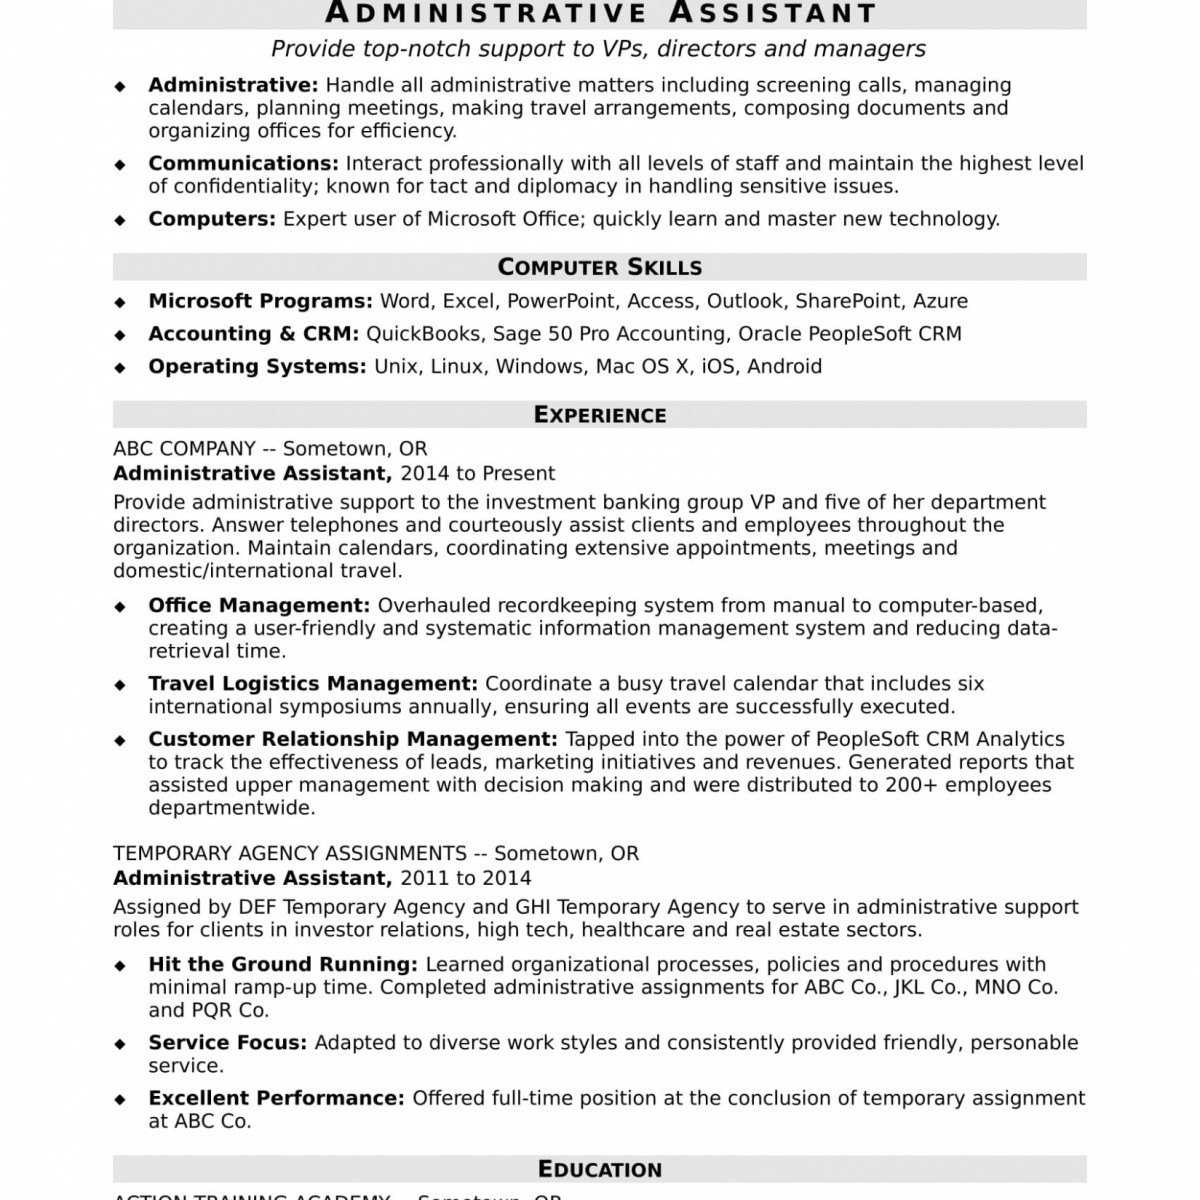 Administrative assistant Resume Template Microsoft Word - Azure Resume Pretty Resume Template Executive assistant Beautiful